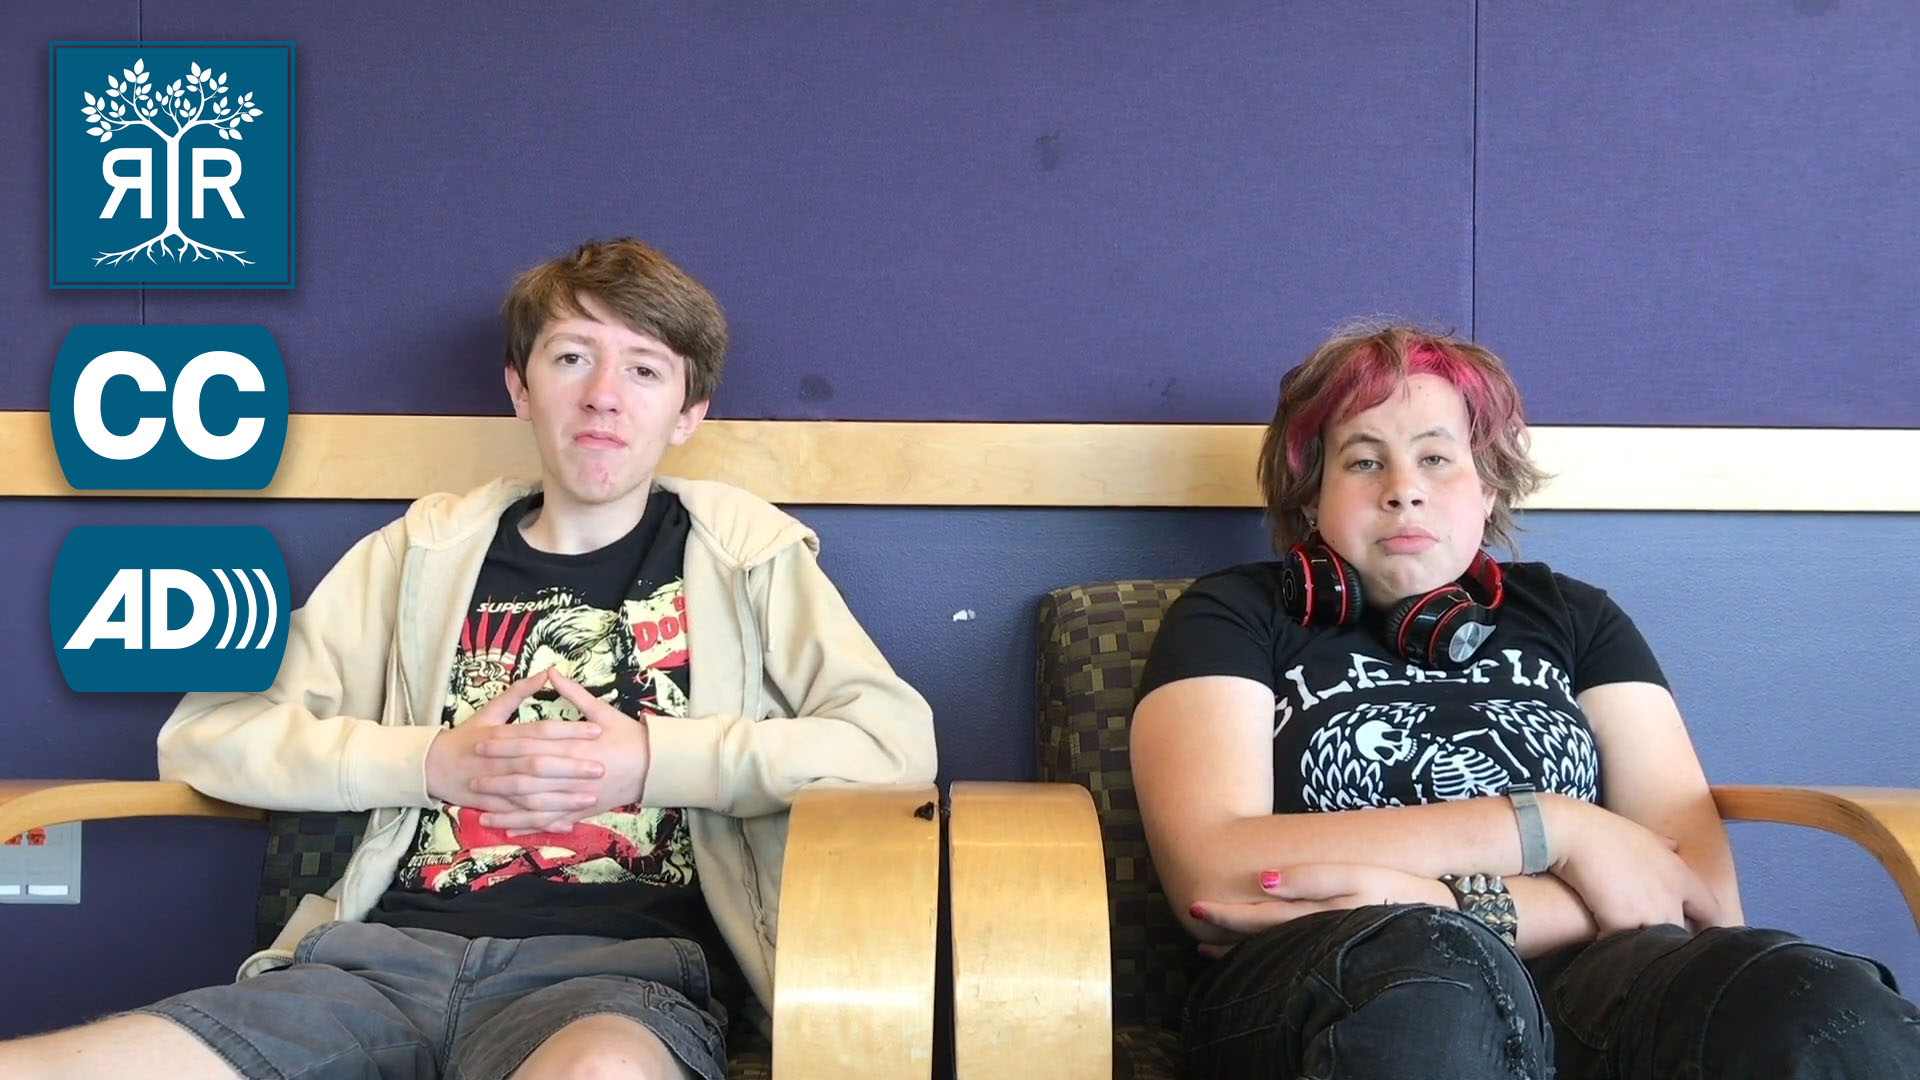 Two students sit in chairs facing the camera